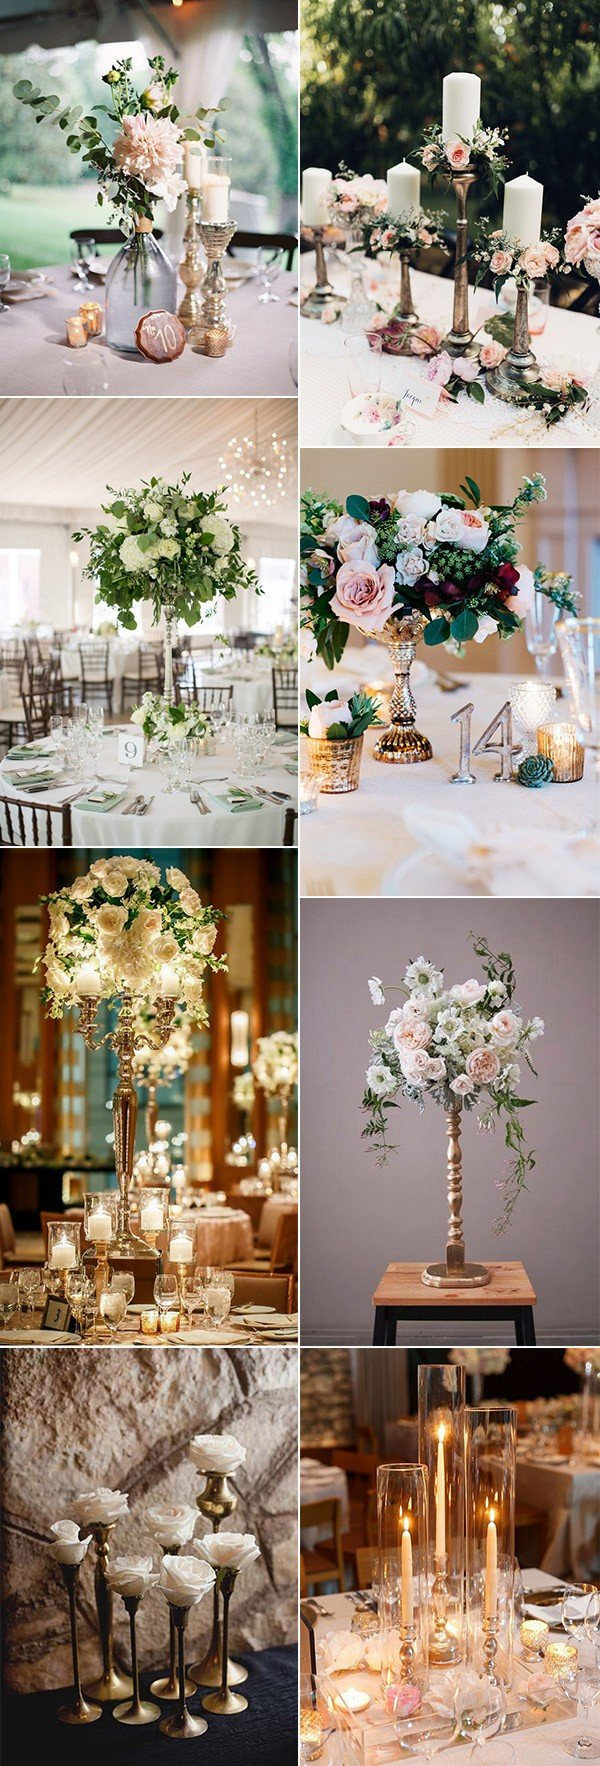 trending wedding centerpieces with candlesticks